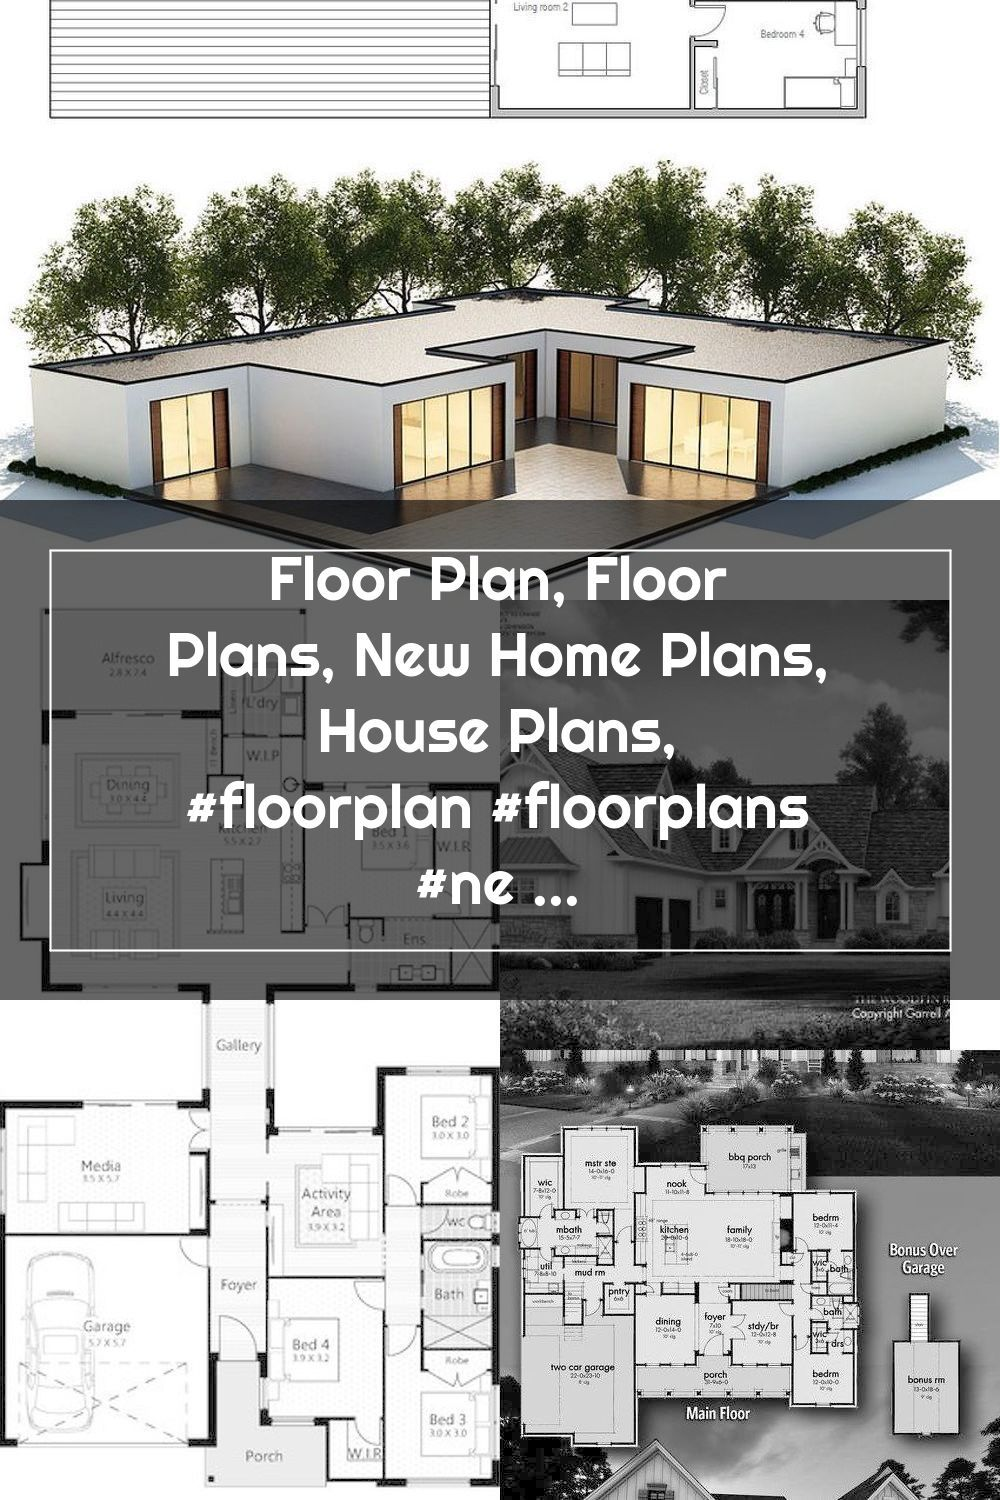 Floor Plan, Floor Plans, New Home Plans, House Plans, #floorplan #floorplans #newhouse #diyhouse